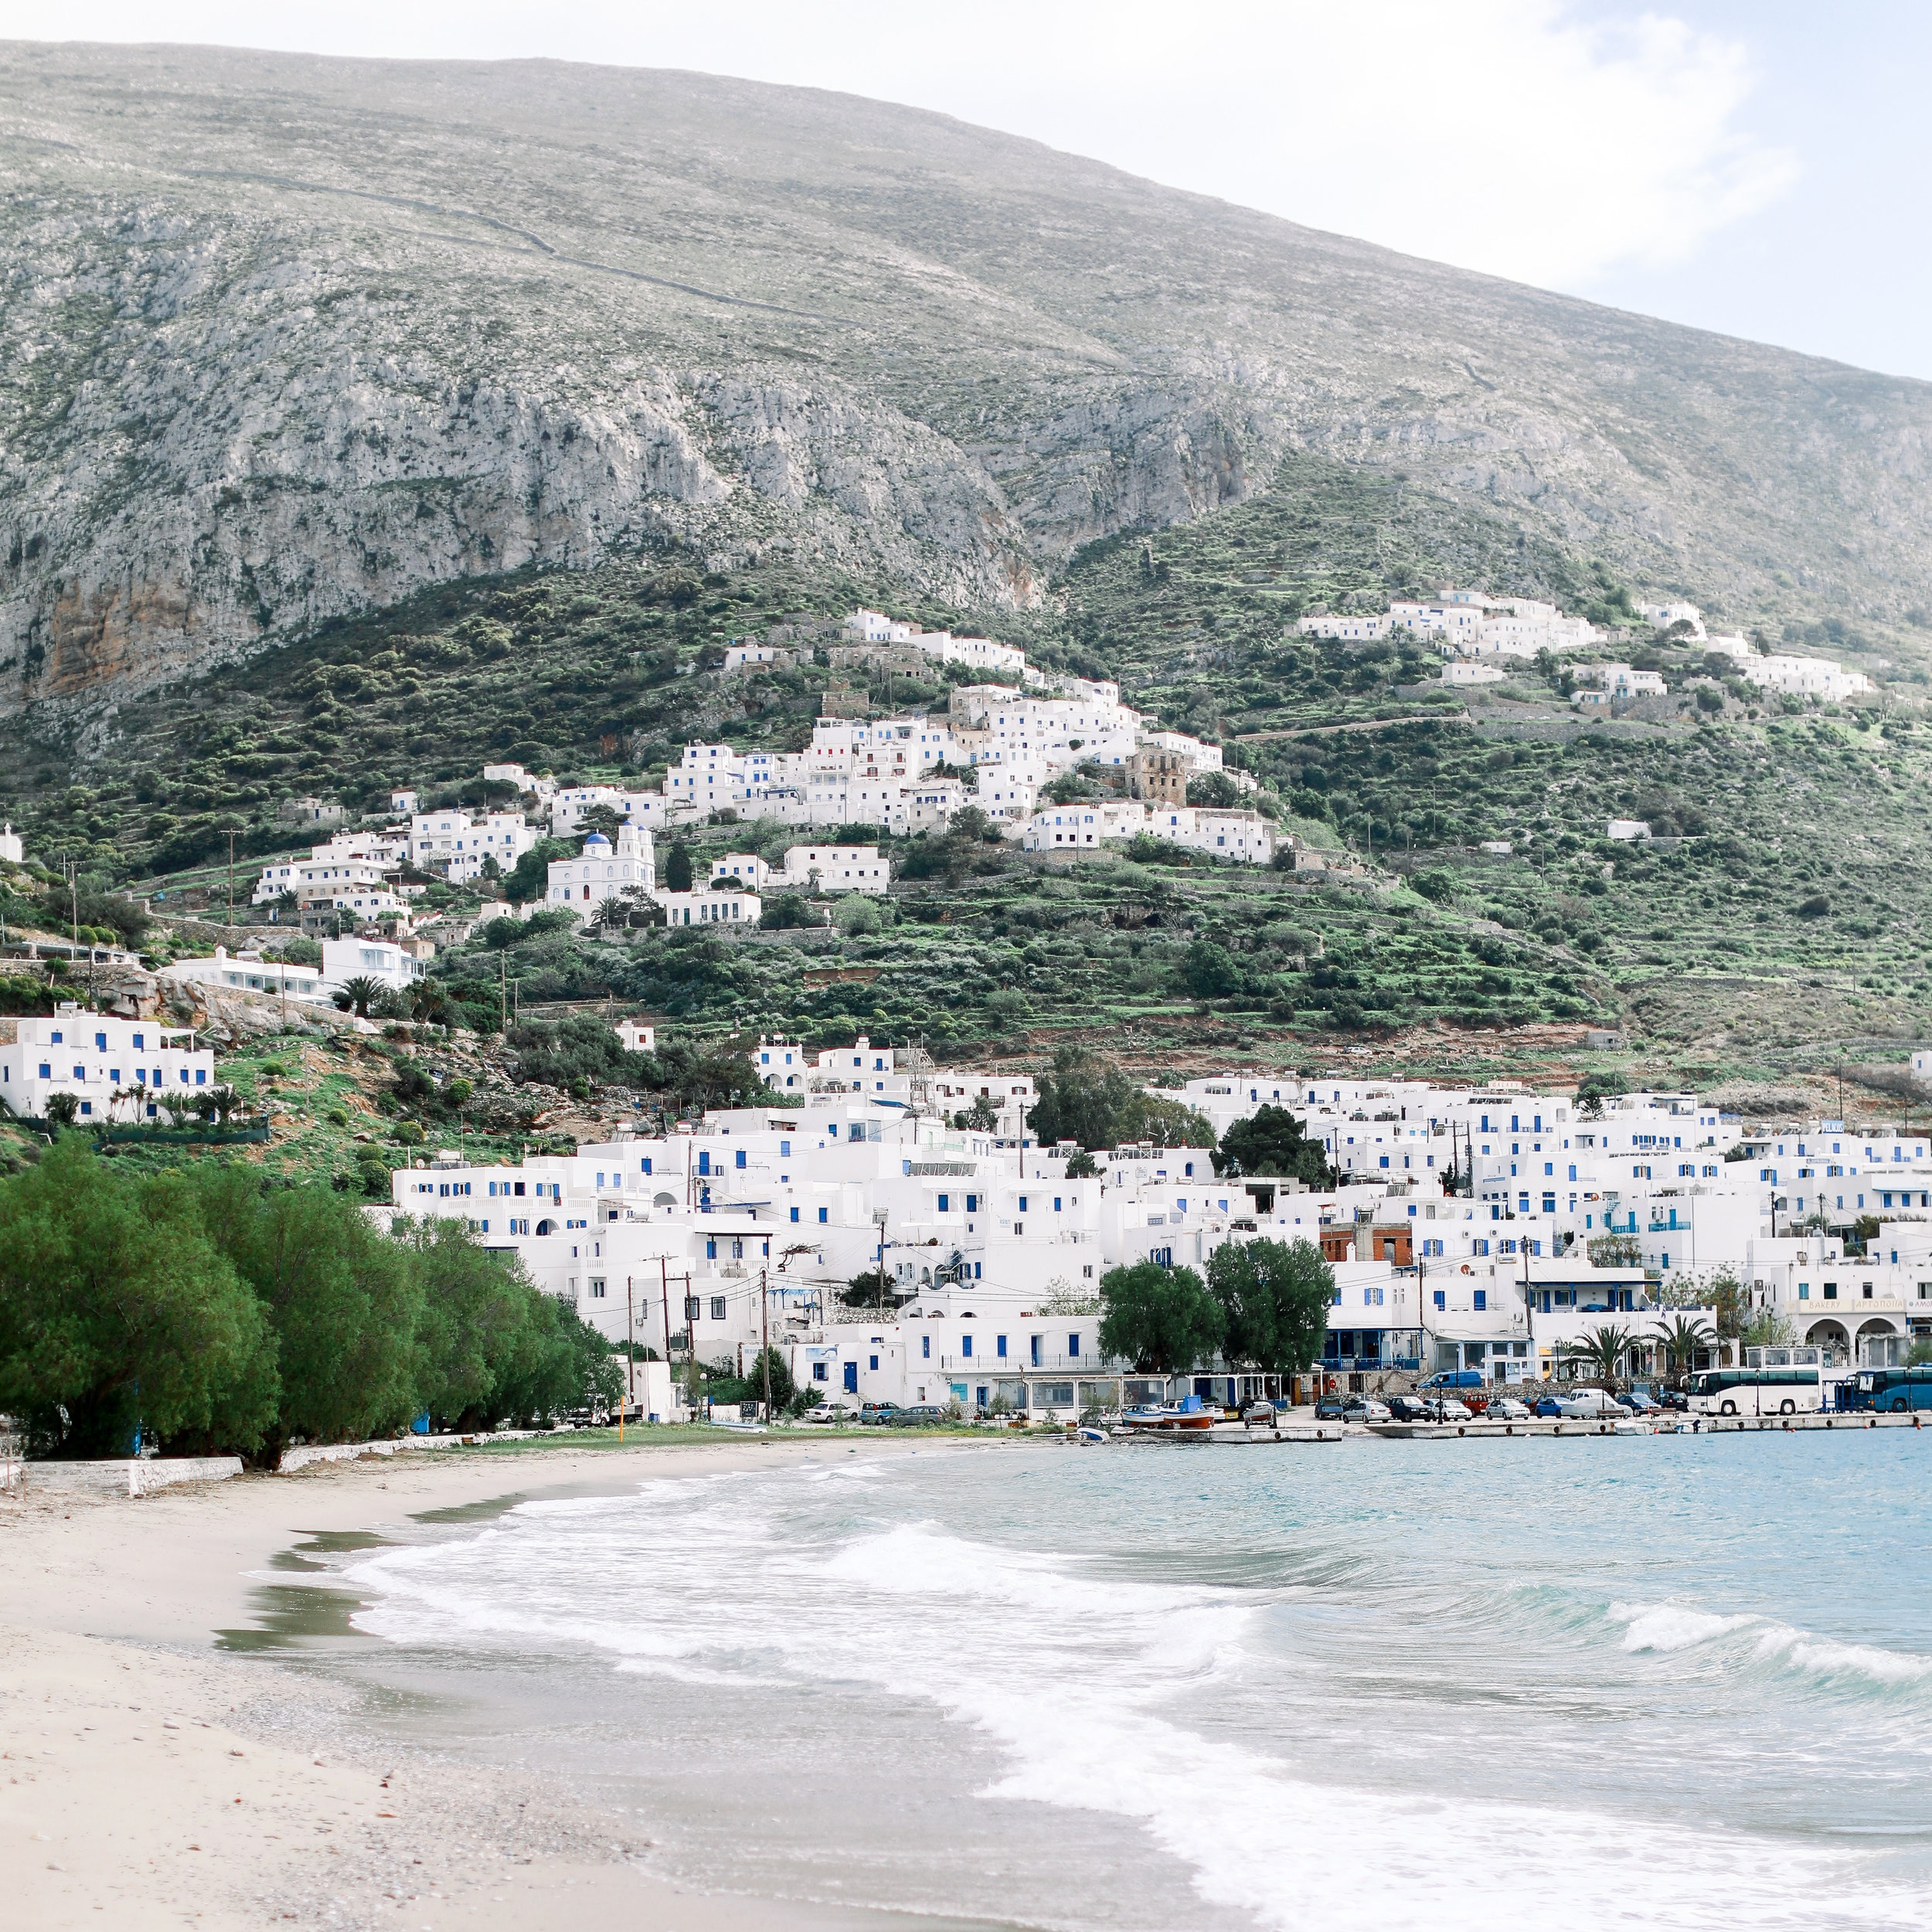 WHERE IS IT?  Known for its beautiful energy and zen-like vibes, Amorgos island is the home Elysia Yoga Convention. As the easternmost island of the Cyclades, Amorgos is a hidden gem away from all the hustle and bustle, a special place where you can connect with nature and find tranquility. With plenty of hiking tracks and beautiful beaches to explore, this island is the perfect oasis for yoga and self-discovery. And whilst you will explore the natural beauty of the island, you can indulge in complete luxury at Aegialis Hotel & Spa, the official venue of the convention. The 5 star establishment offers sea views from each room, elegance and comfort. Known as a top yoga destination in the world, Aegialis hotel & spa offers 6 beautiful yoga shalas and 2 rooftop areas outdoor yoga and meditation.